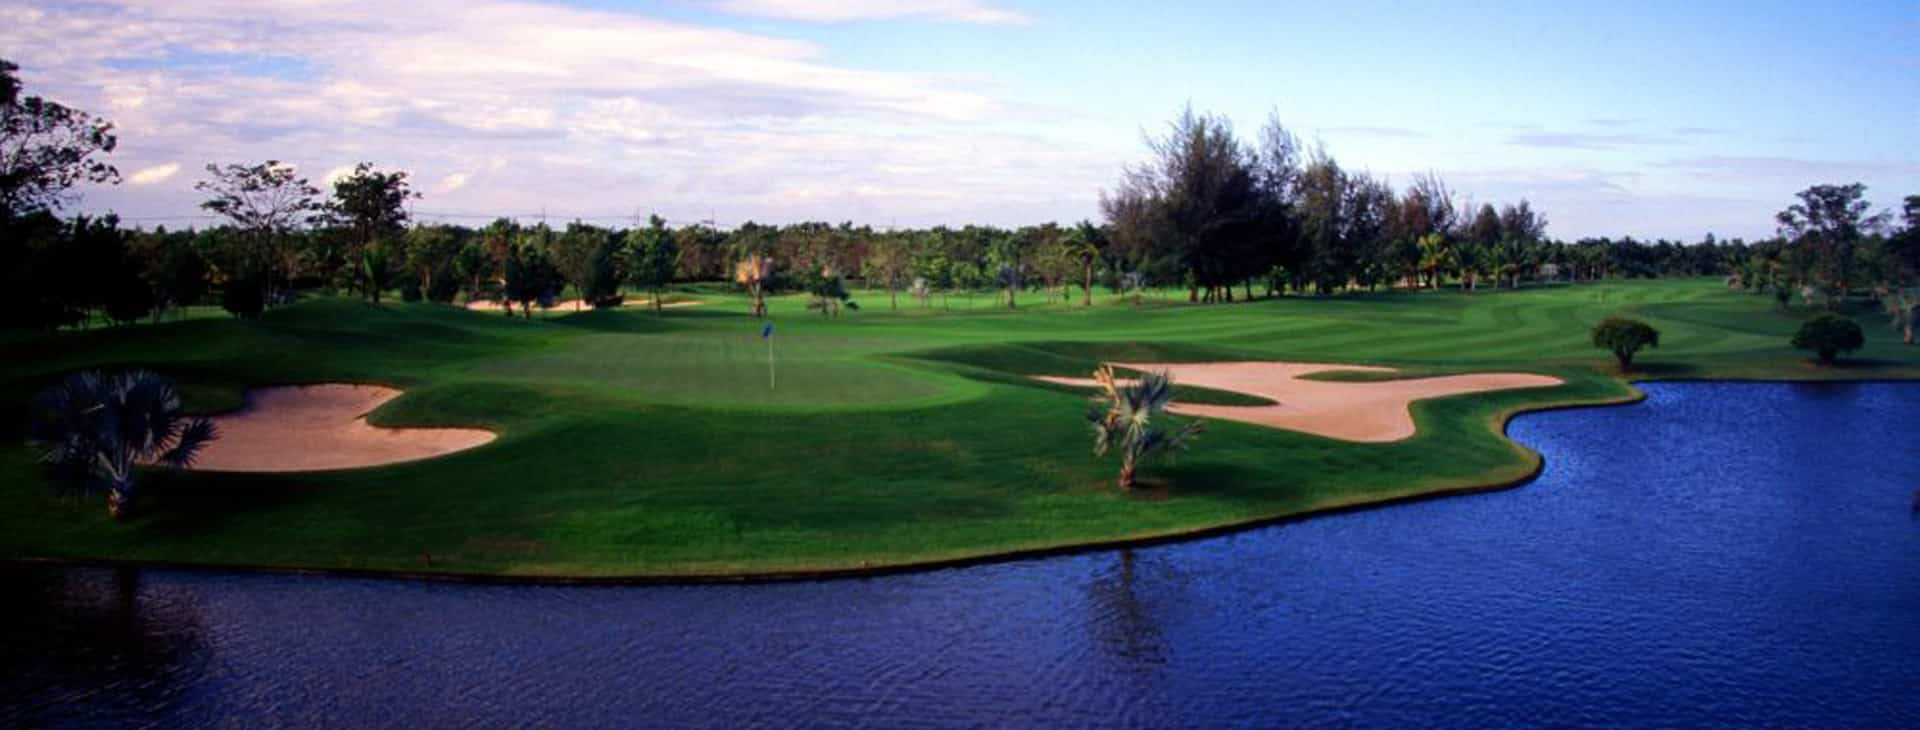 Golf Thailand_Golf Courses_Bangkok_Thai Country Club